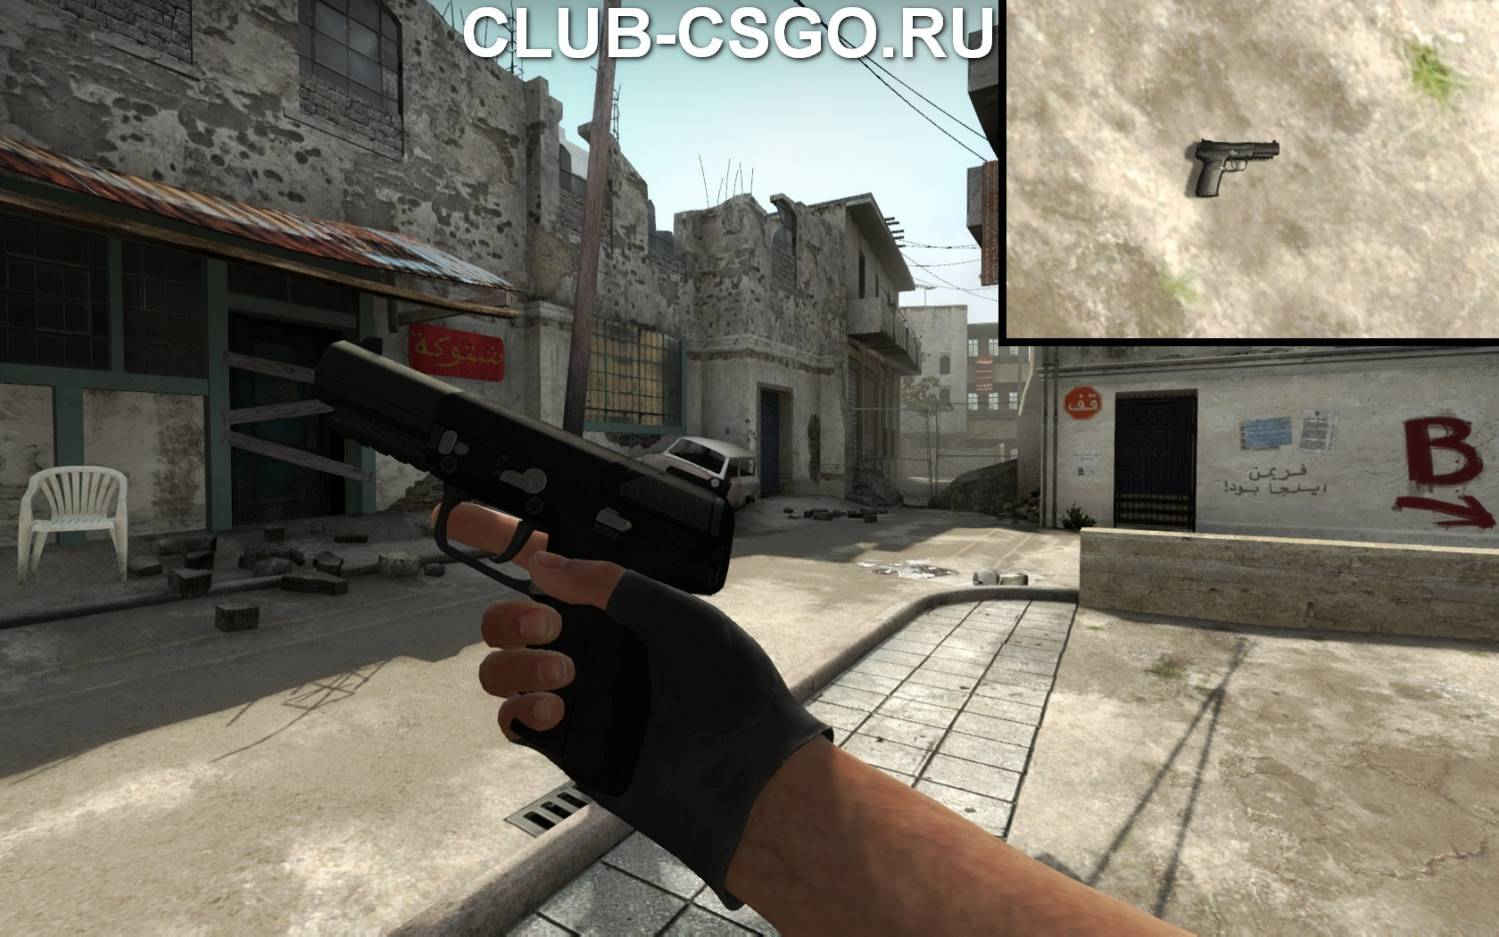 Скачать Shomy's Five-Seven пистолет для CS:GO